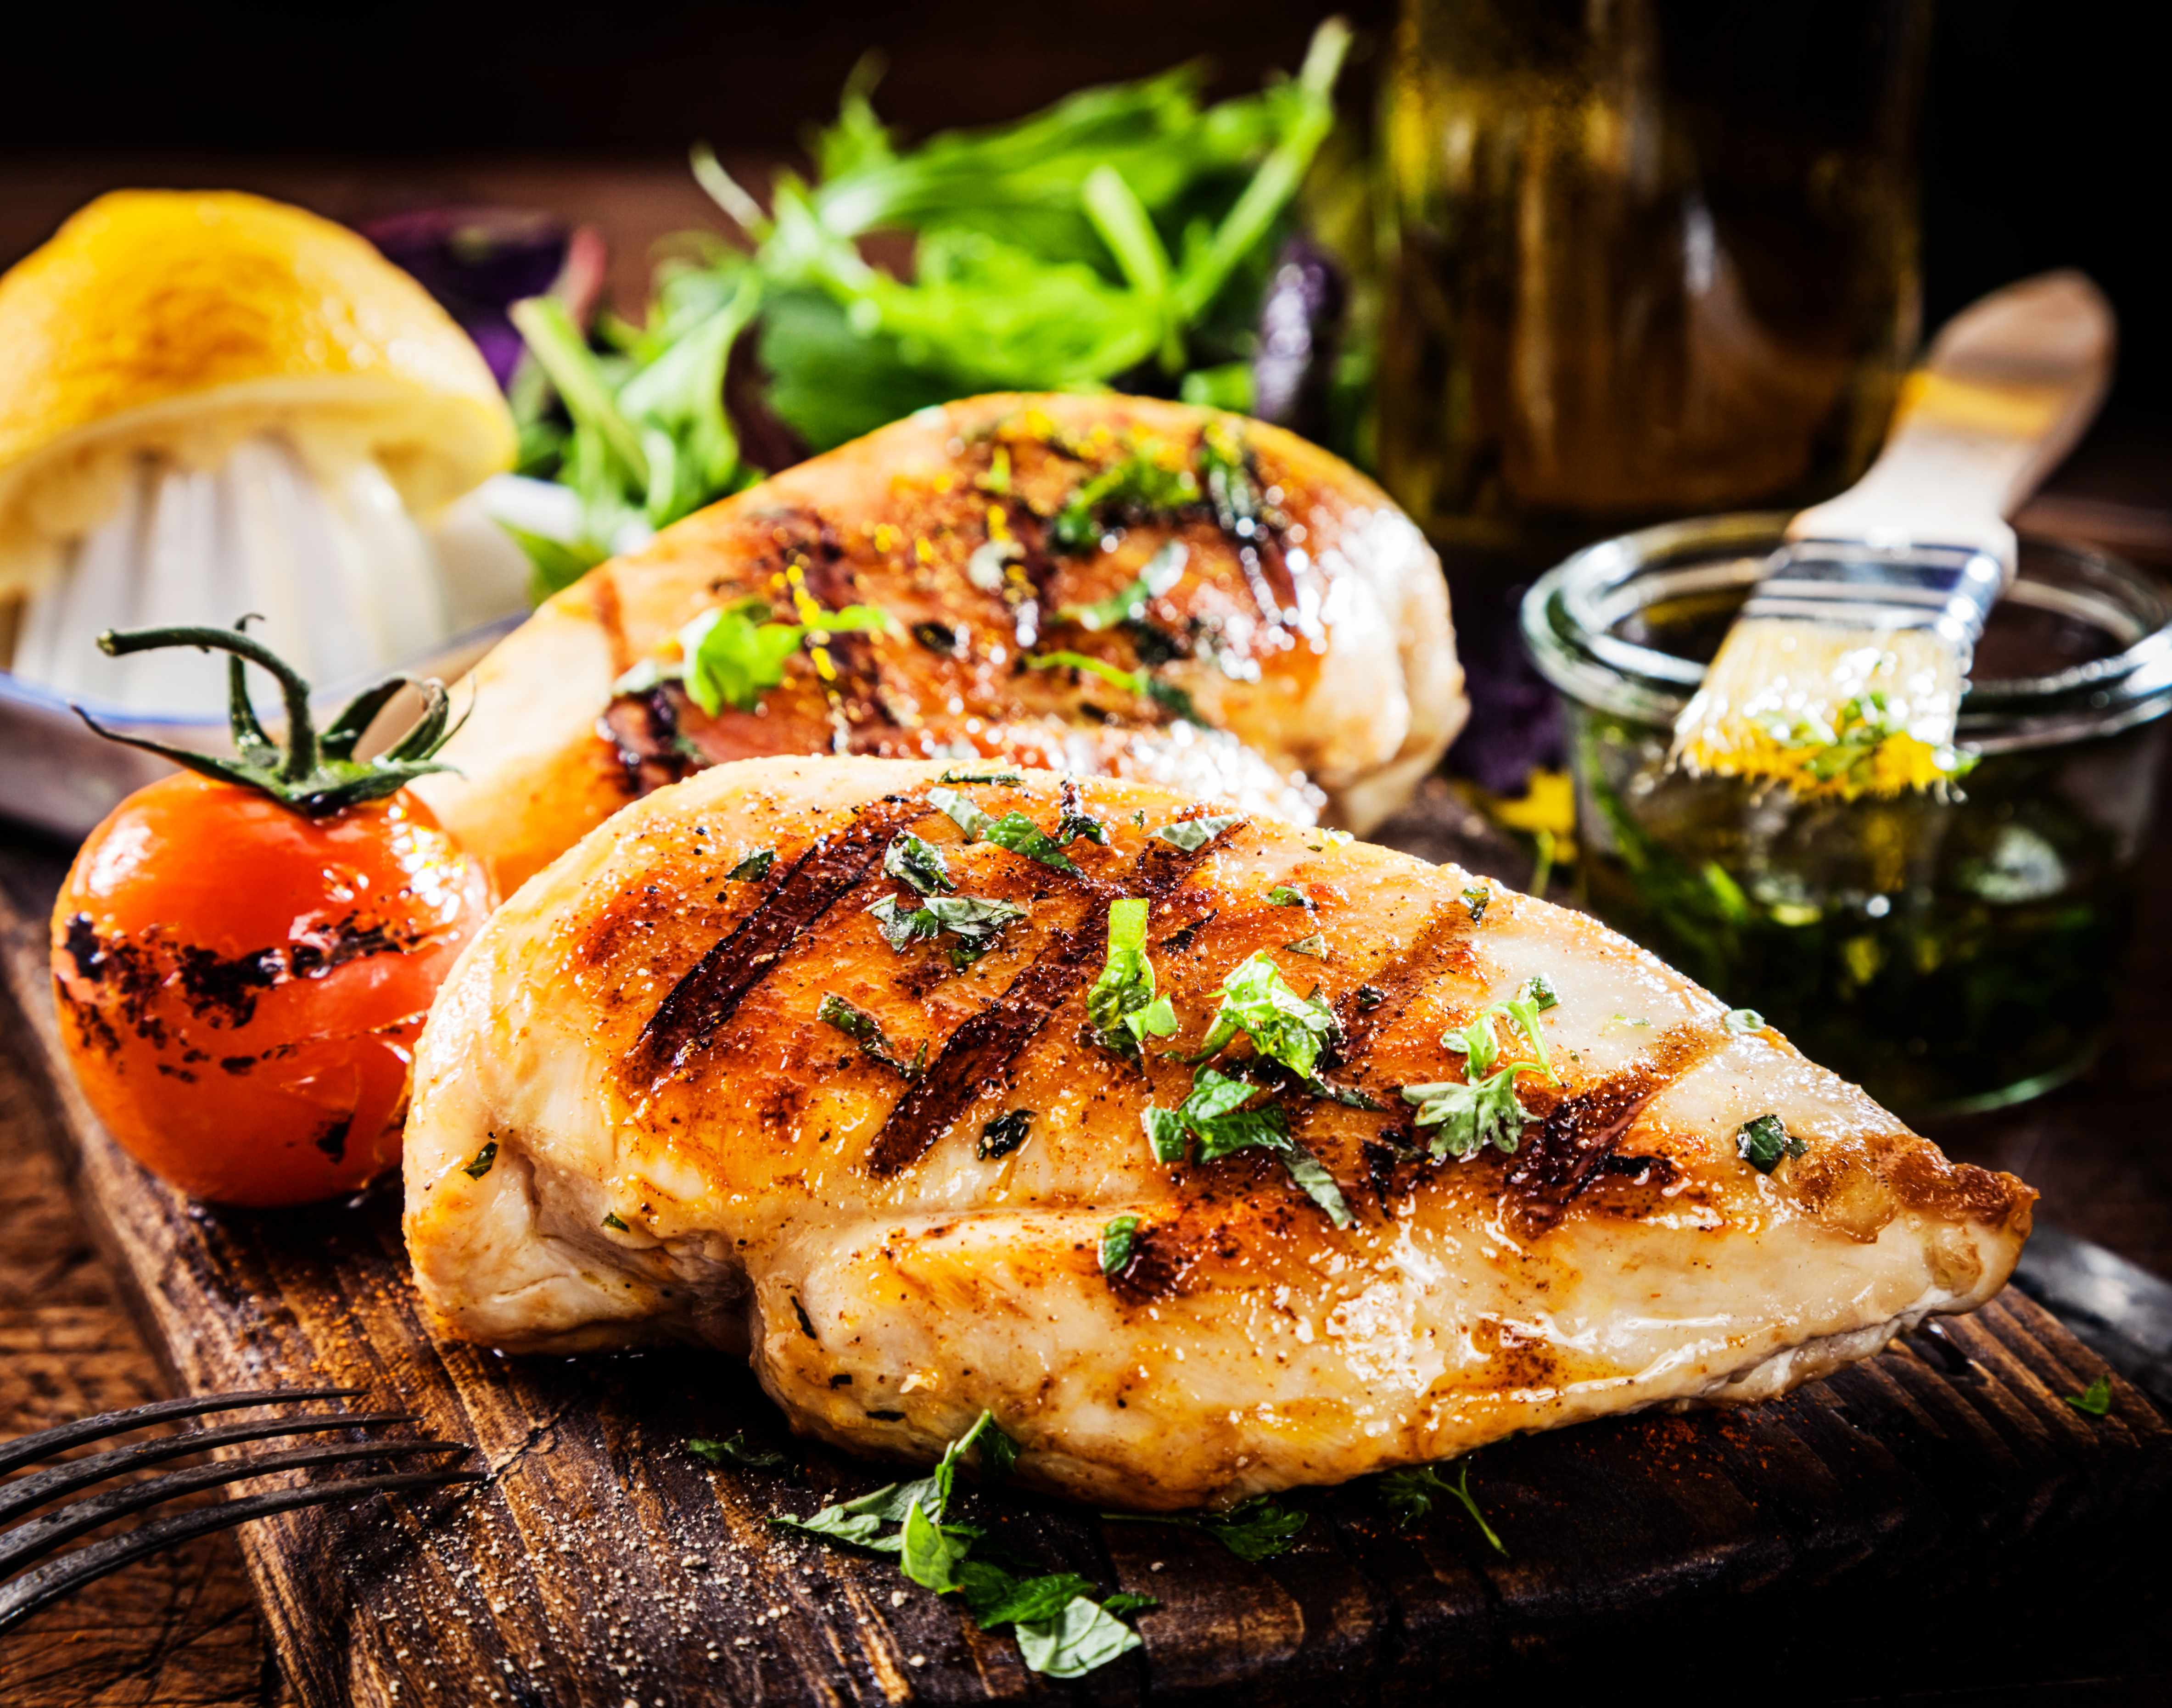 grilled chicken on cutting board with spices and vegetables